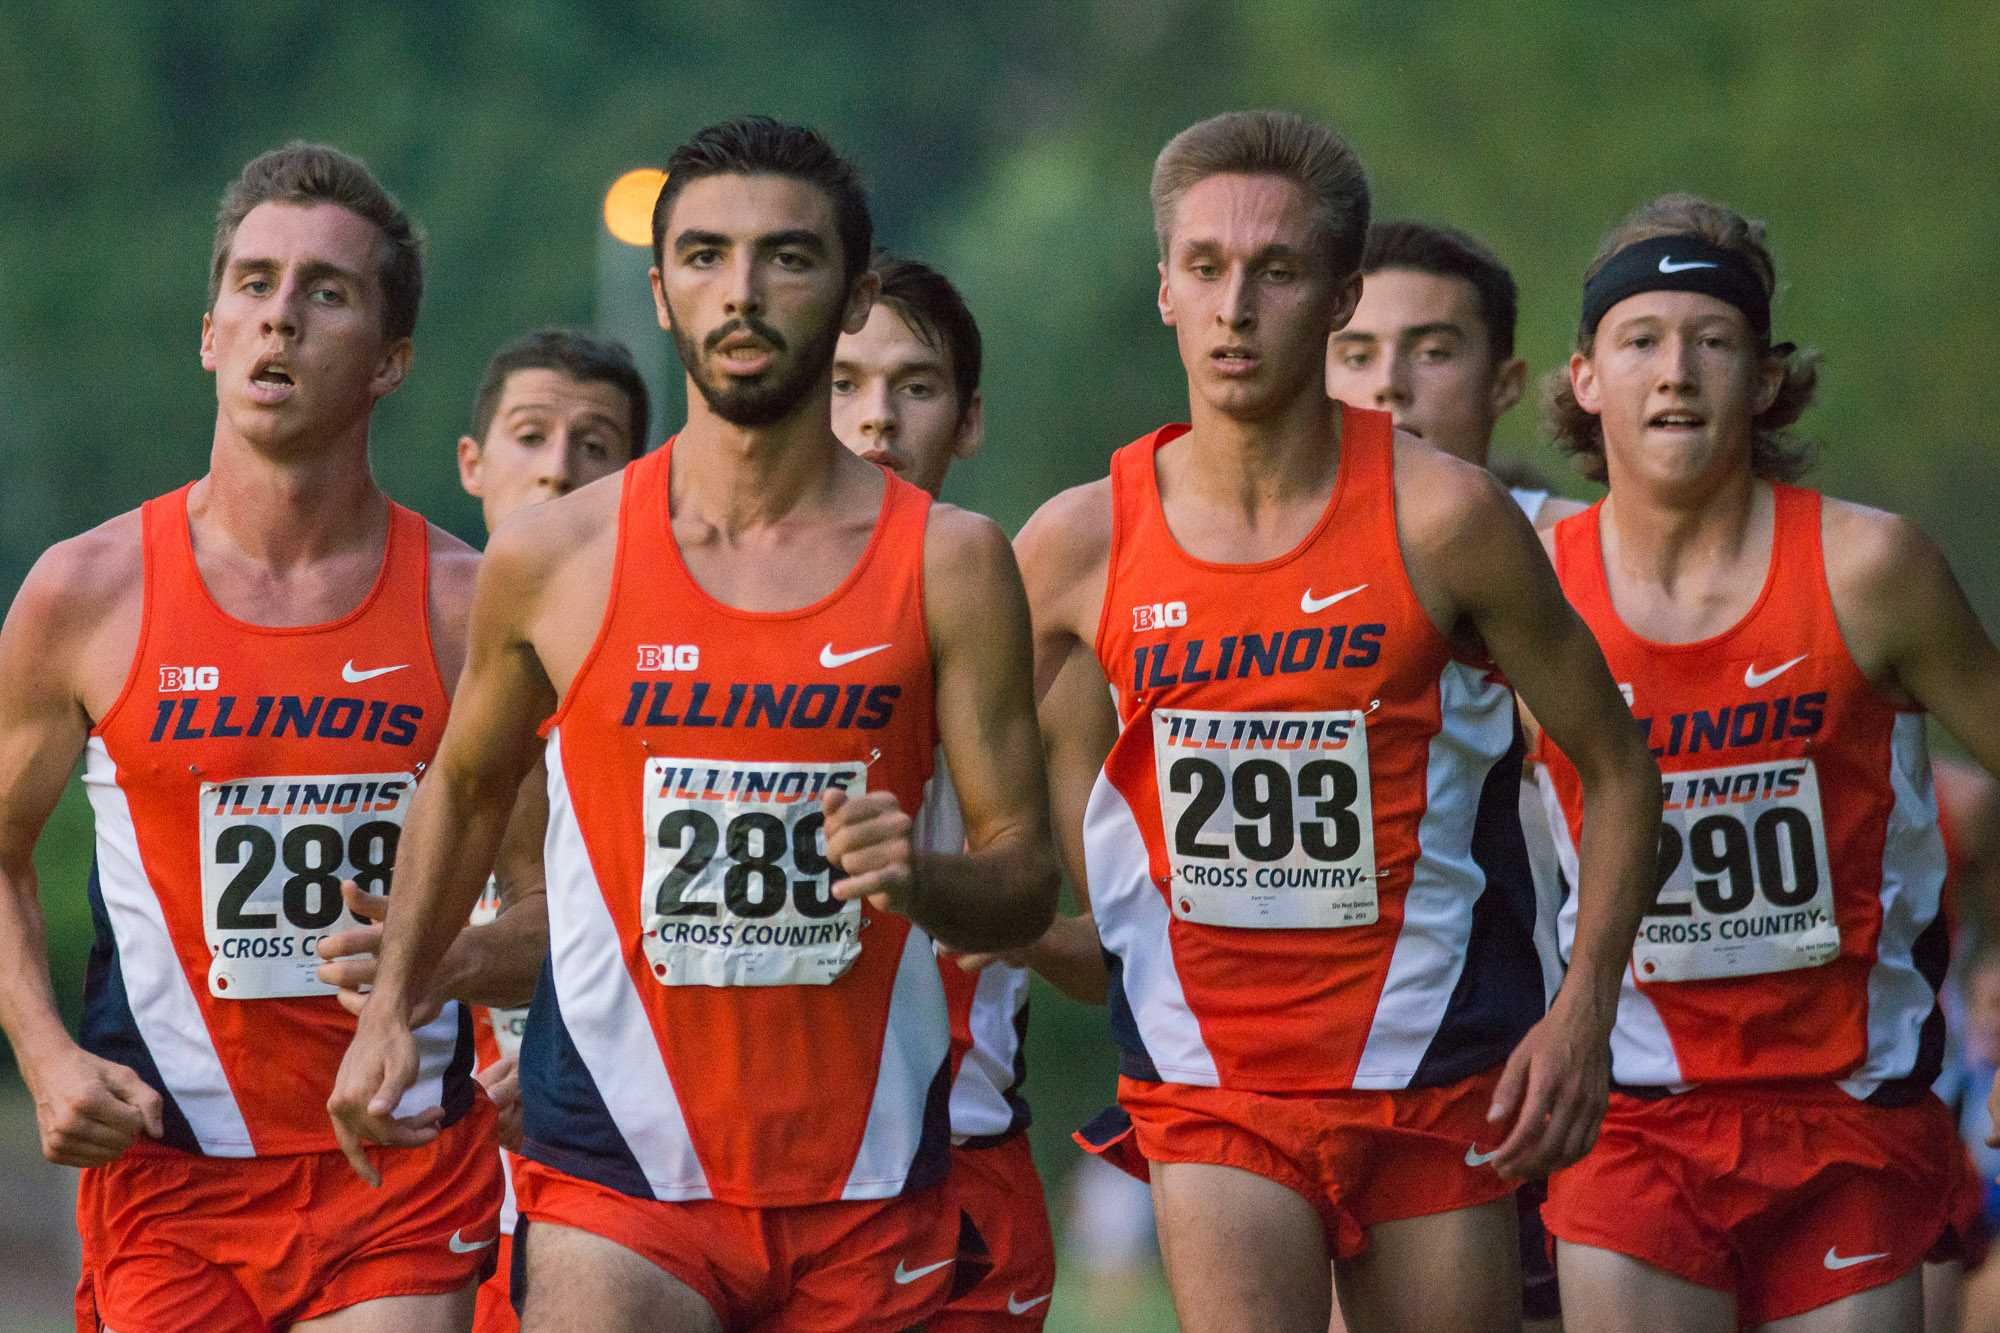 The men keeping it together at the Illini Challenge 2015 at the Arboretum on September 4.